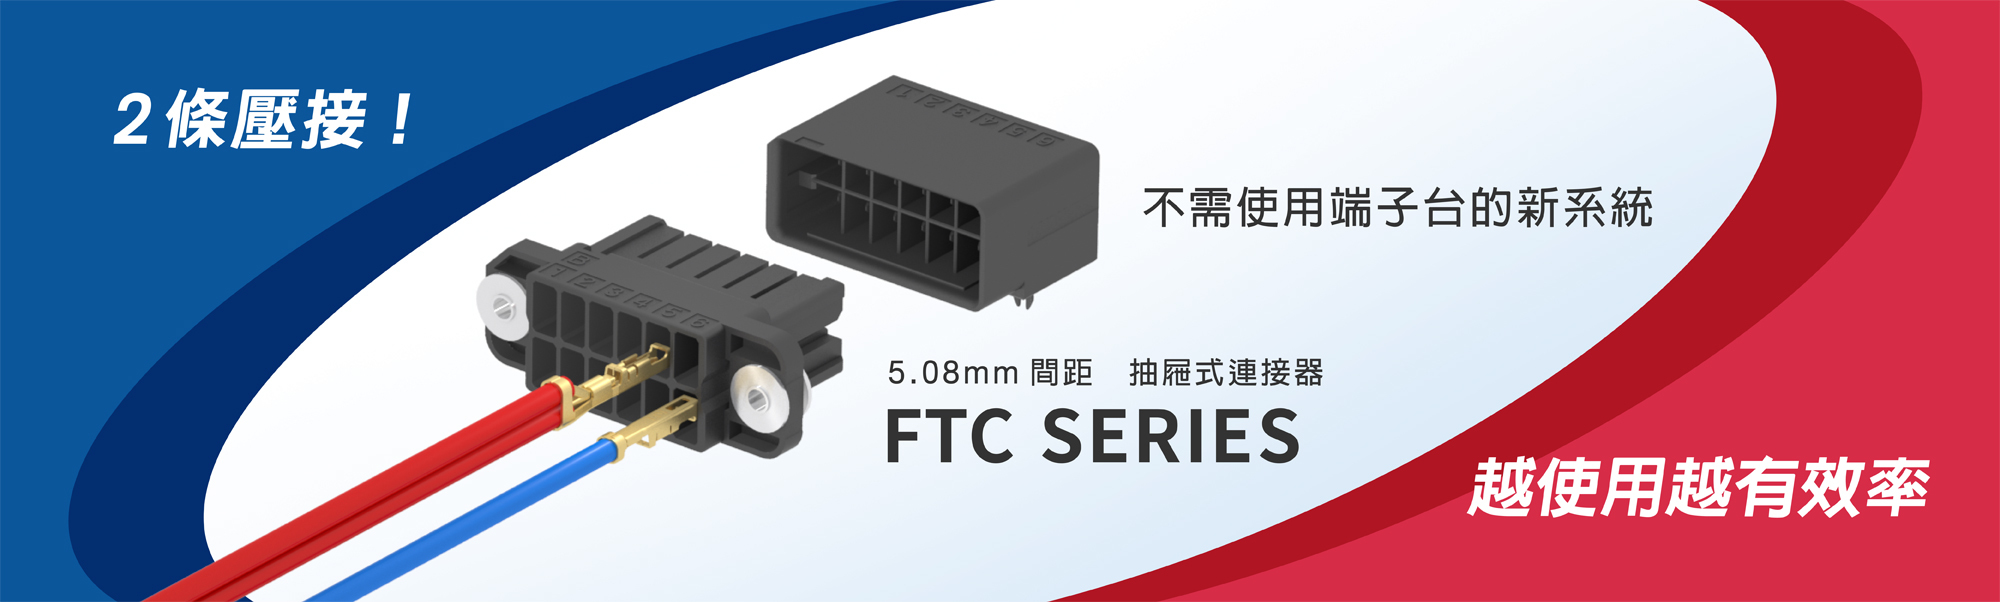 FTC SERIES SLIDER (TAIWAN)